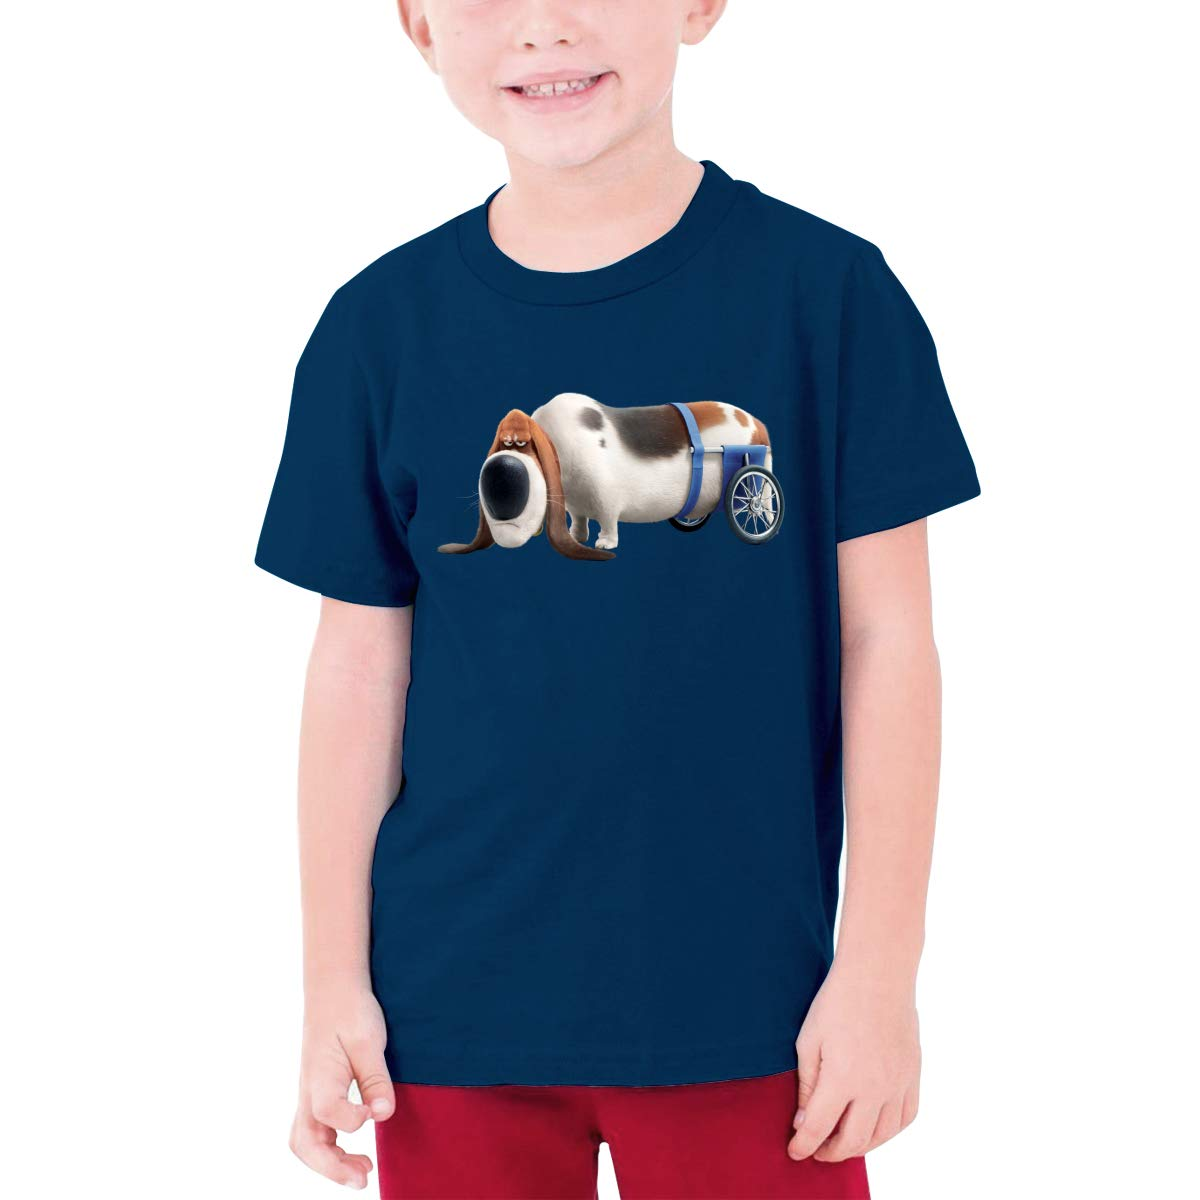 LOUHART Custom The Secret Life of Pets Old Dog Funny Shirt O-Neck for Youngster Black